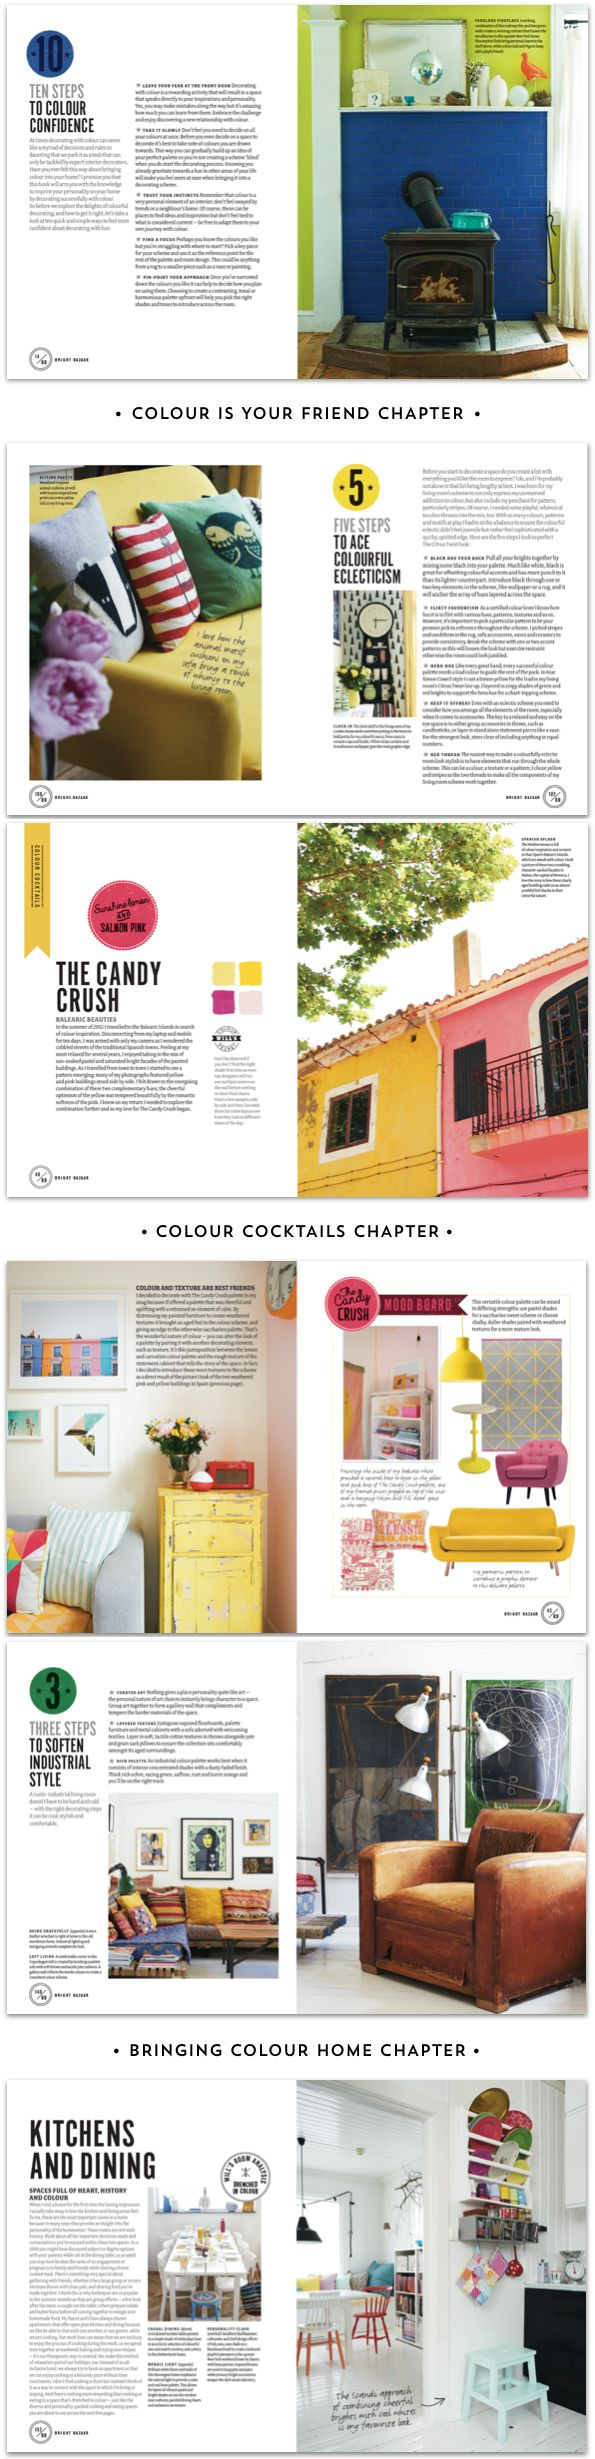 The BRIGHT BAZAAR BOOK is full of colorful decorating ideas that you can try today no matter the size of your home! http://www.amazon.com/gp/product/1250042011